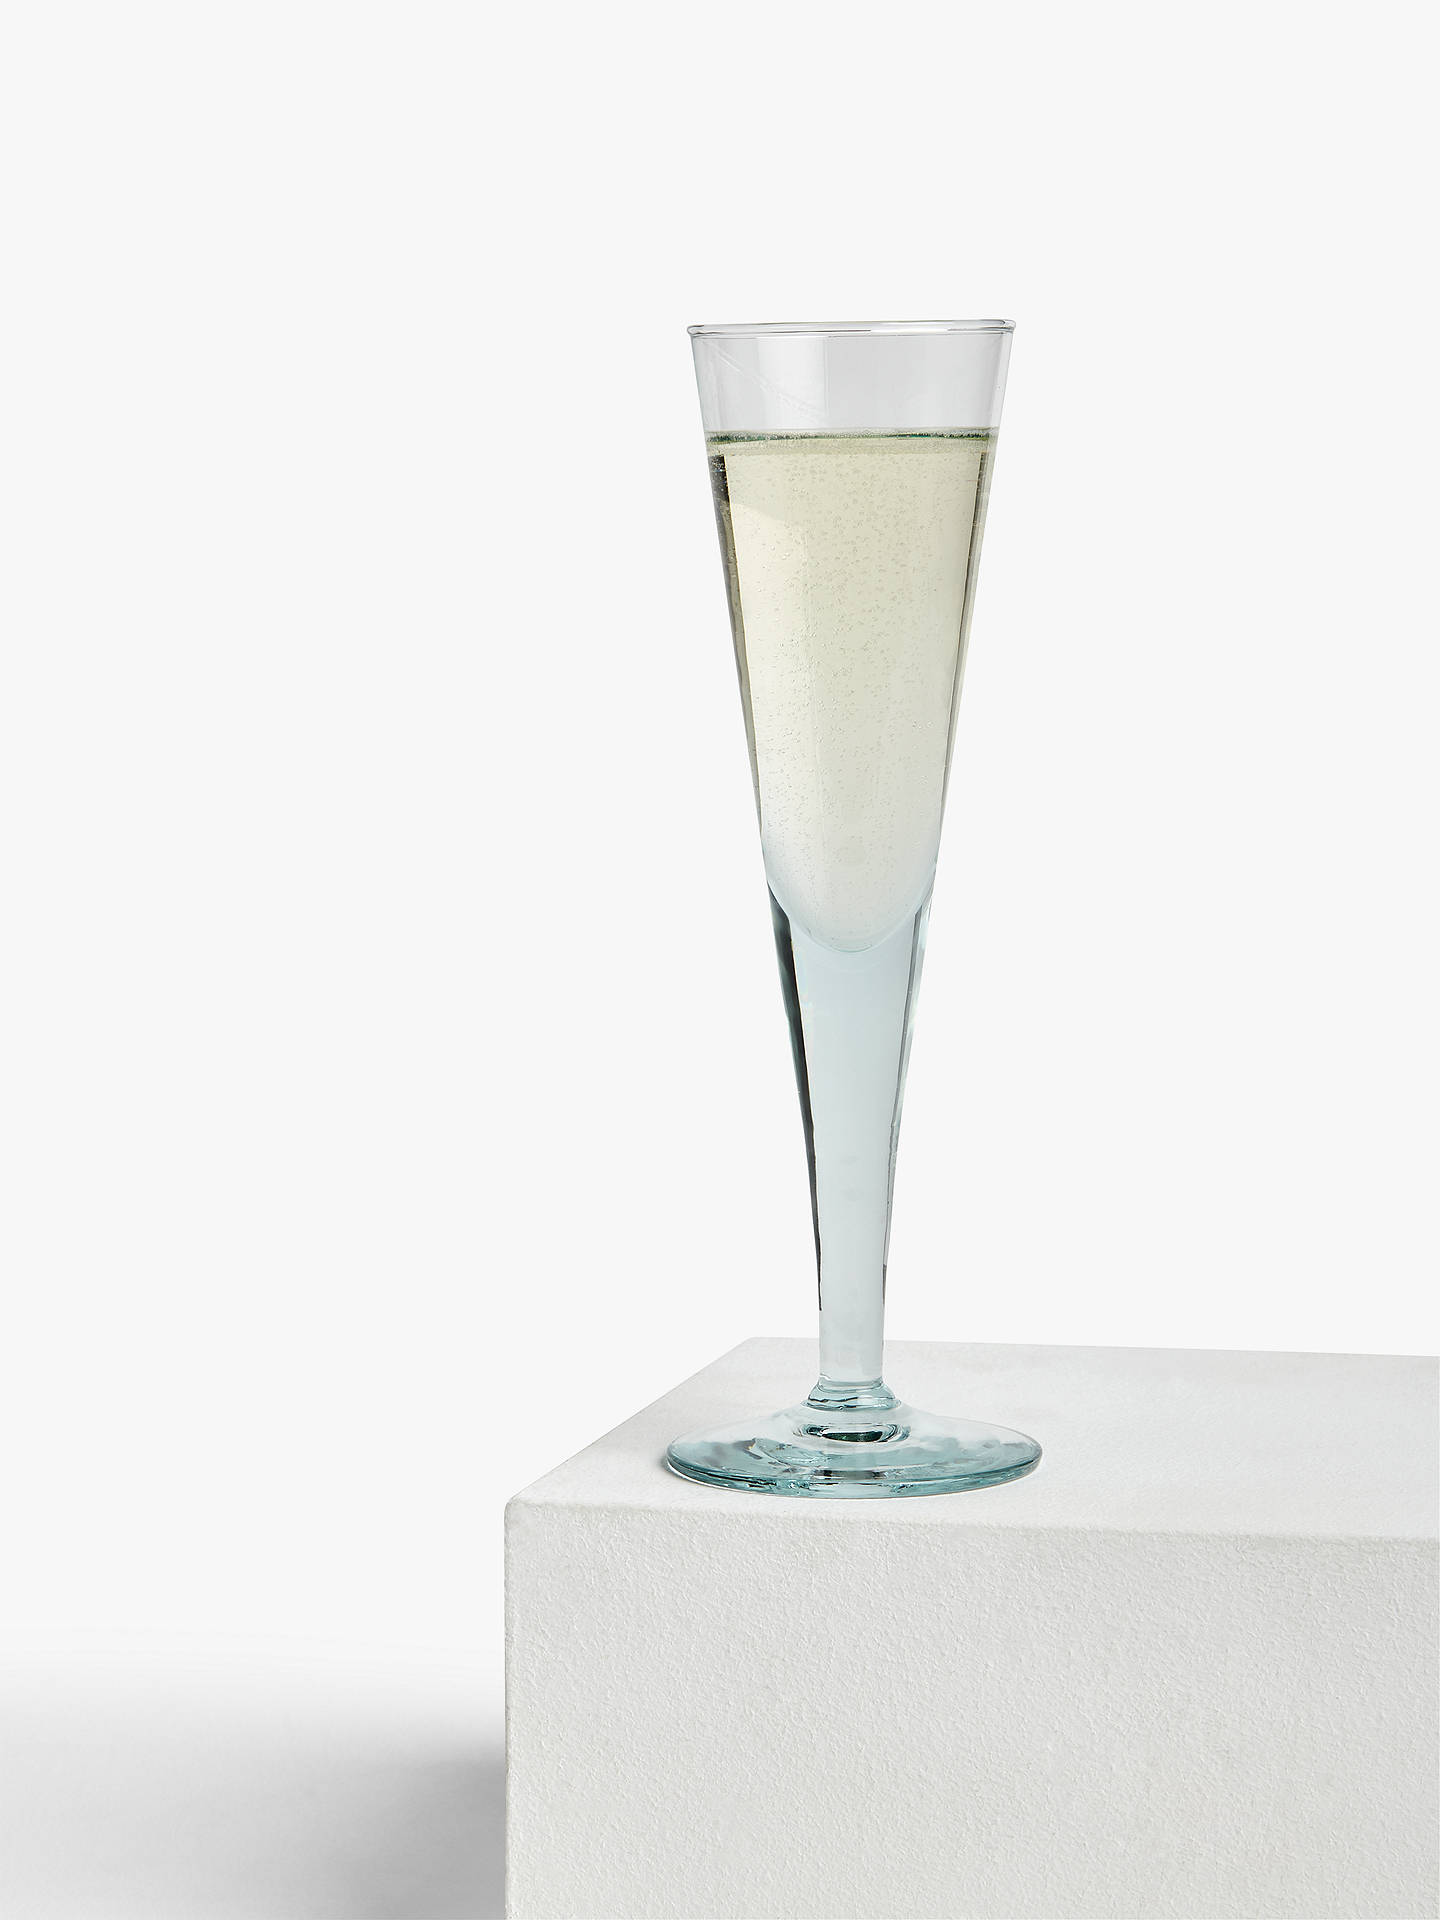 Buy Croft Collection Recycled Glass Champagne Flute, 140ml, Clear Online at johnlewis.com